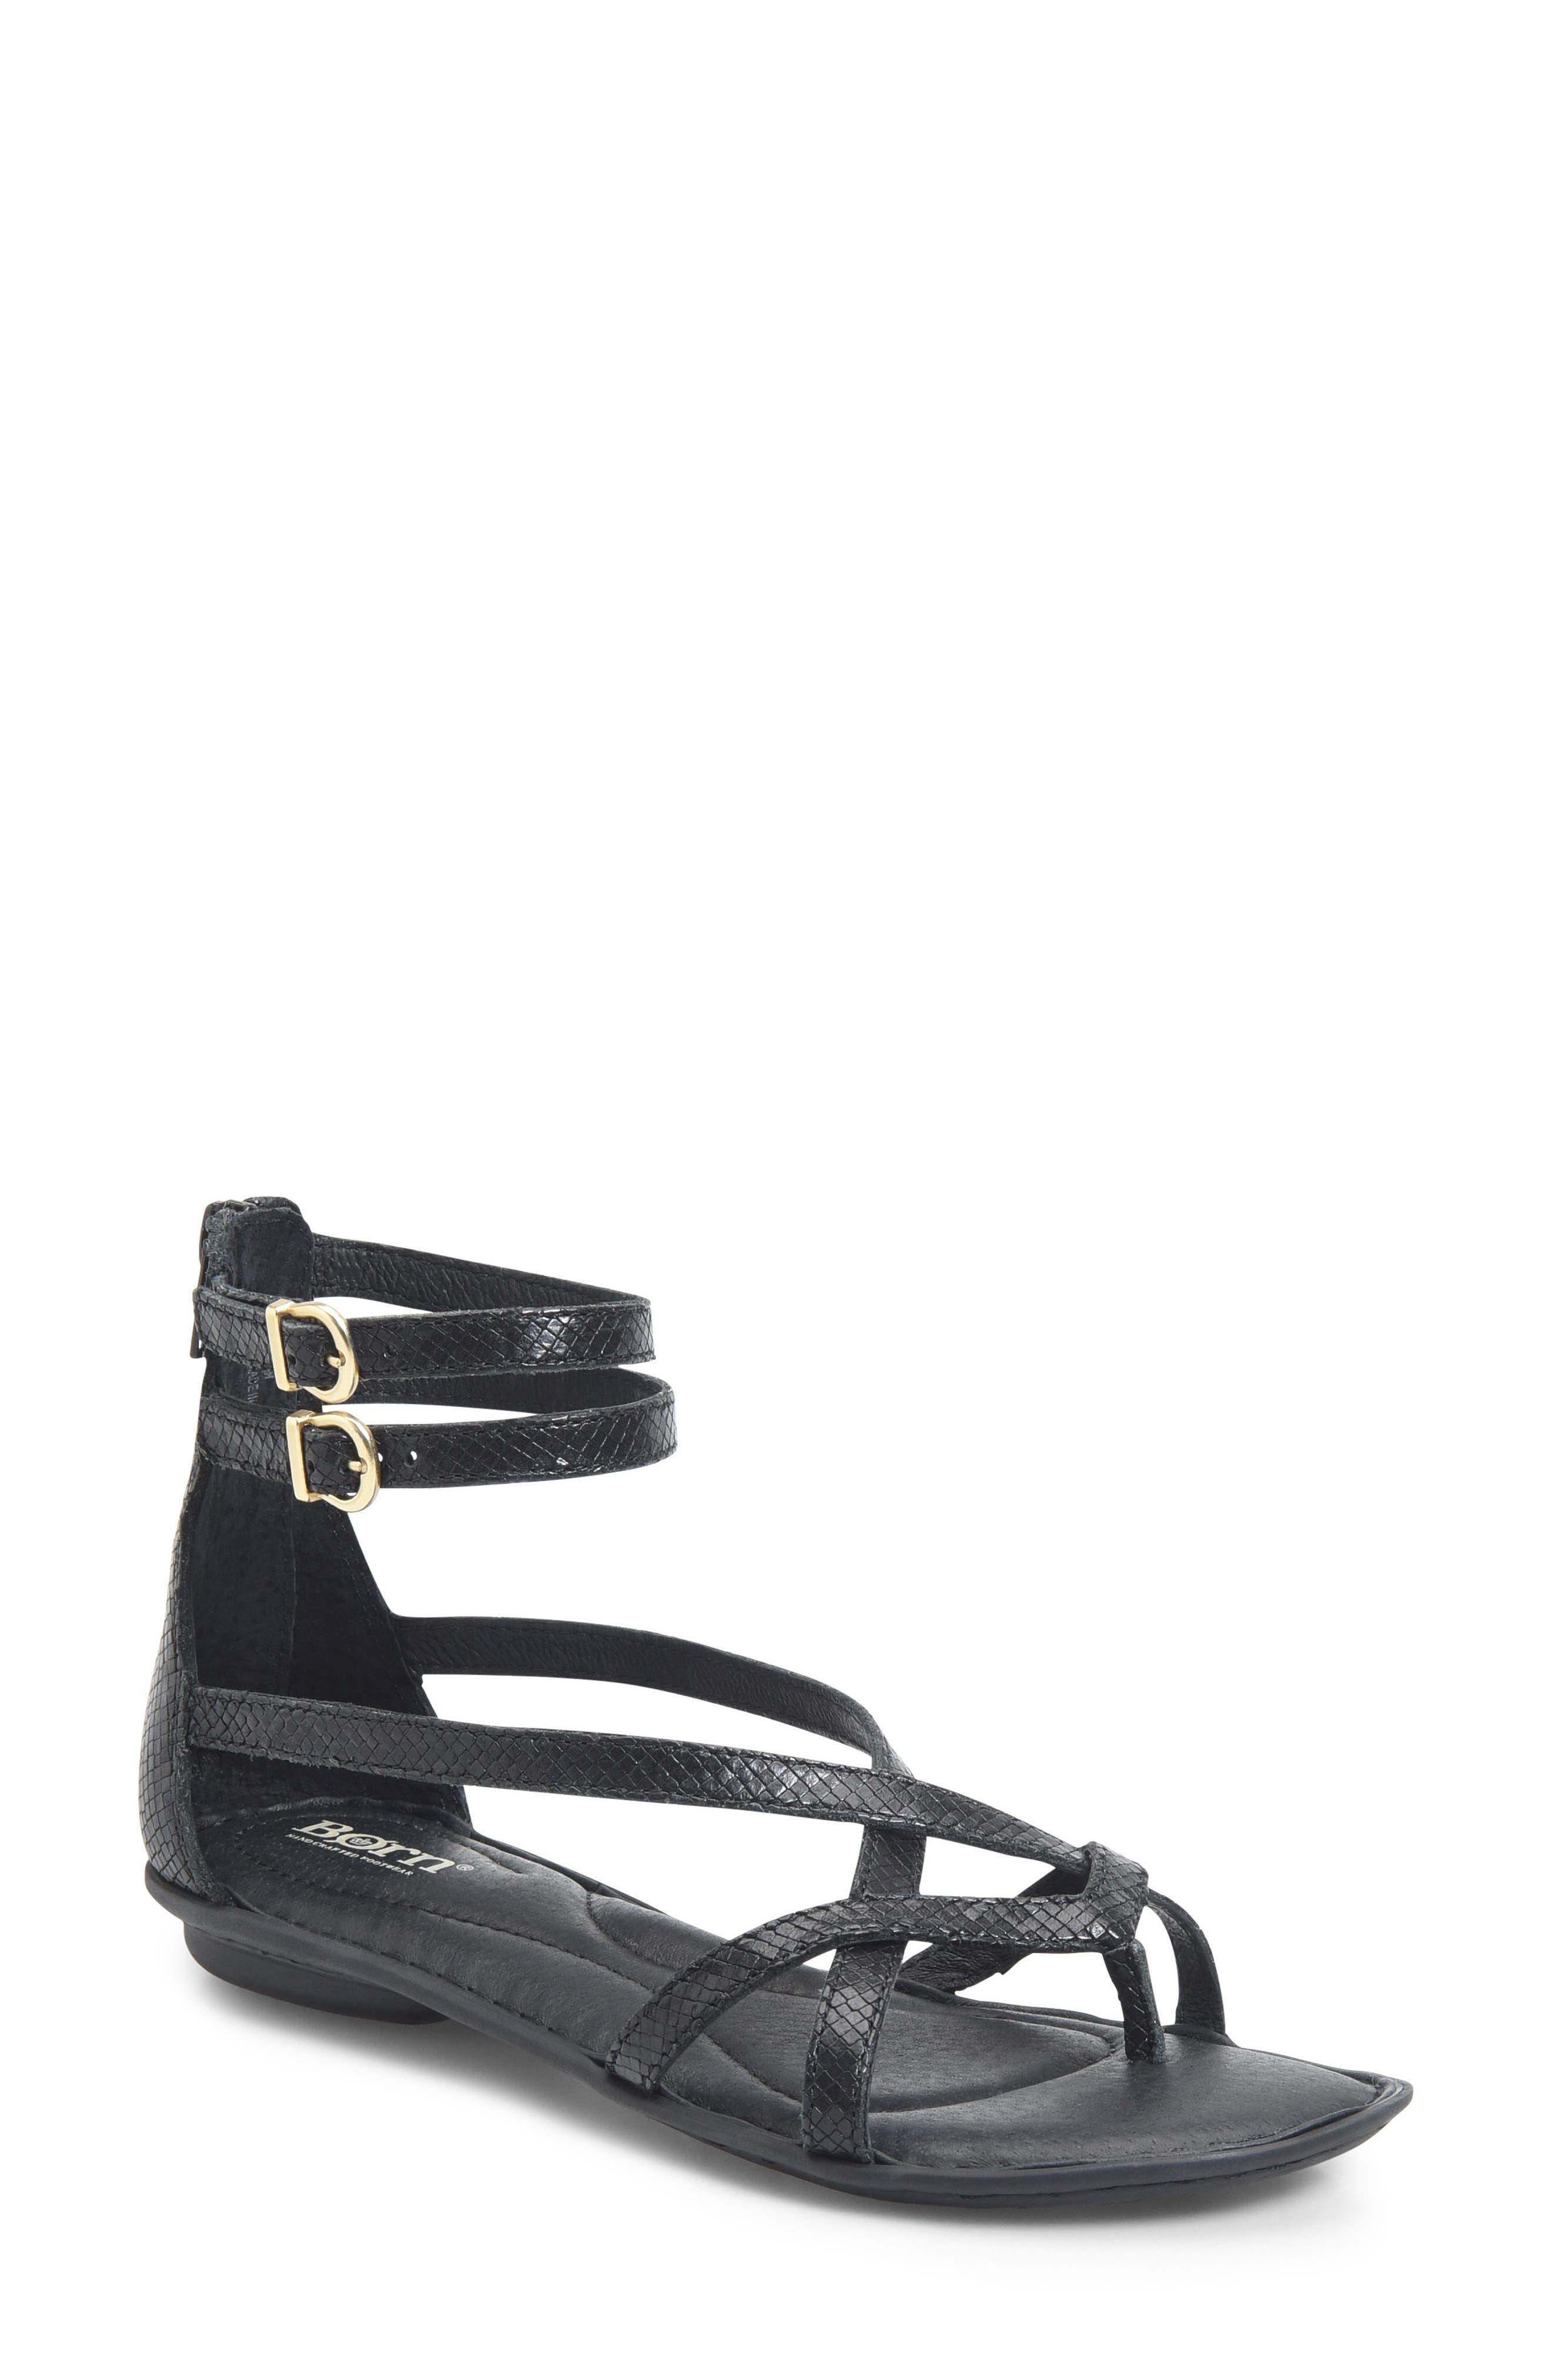 Mai Gladiator Sandal,                         Main,                         color, 001